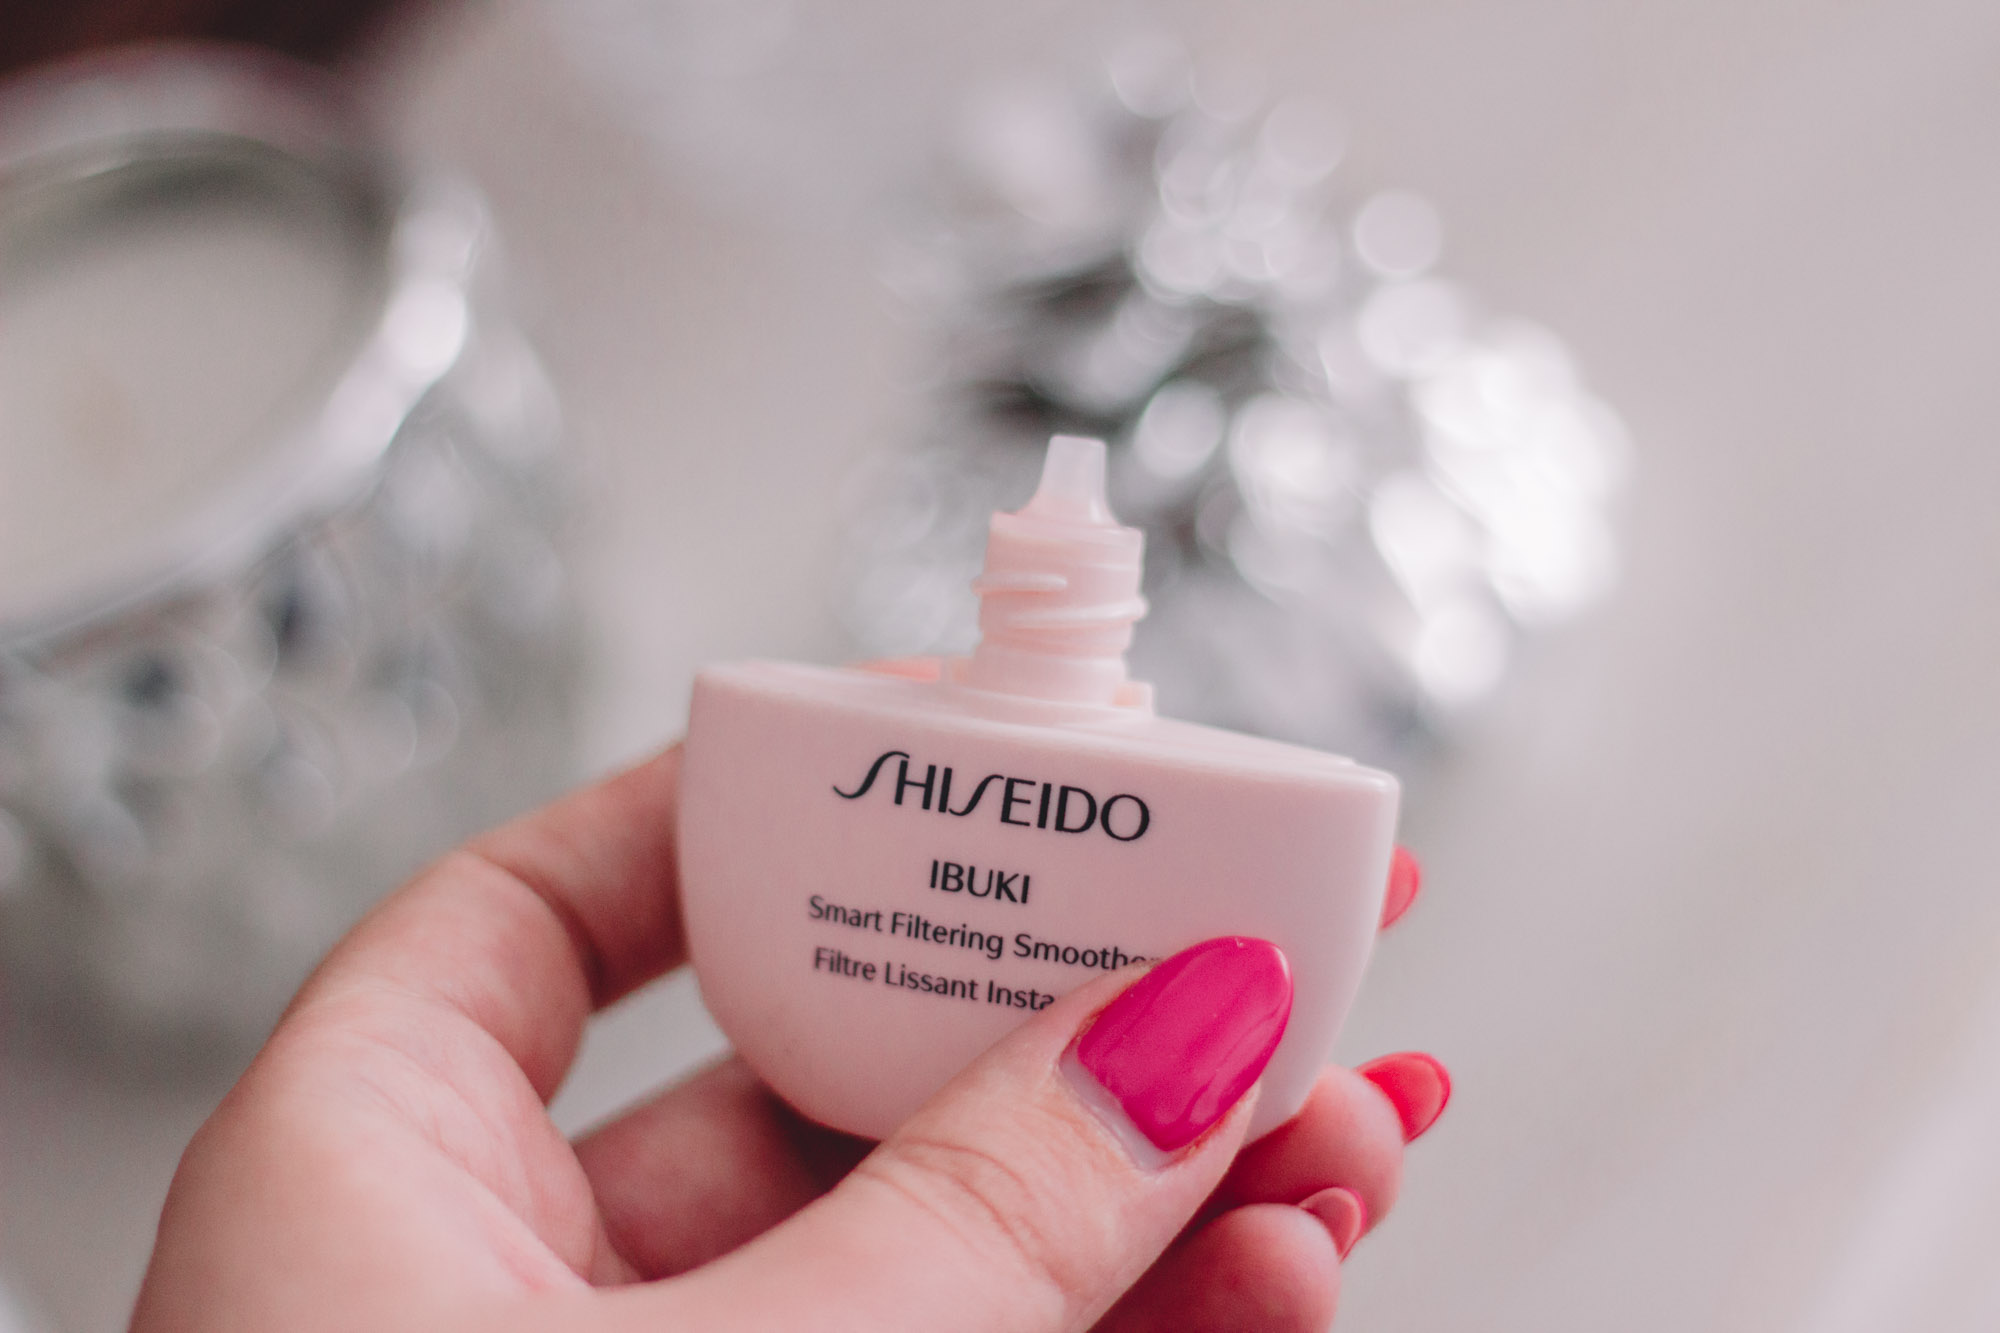 shiseido-ibuki-smart-filtering-smooth